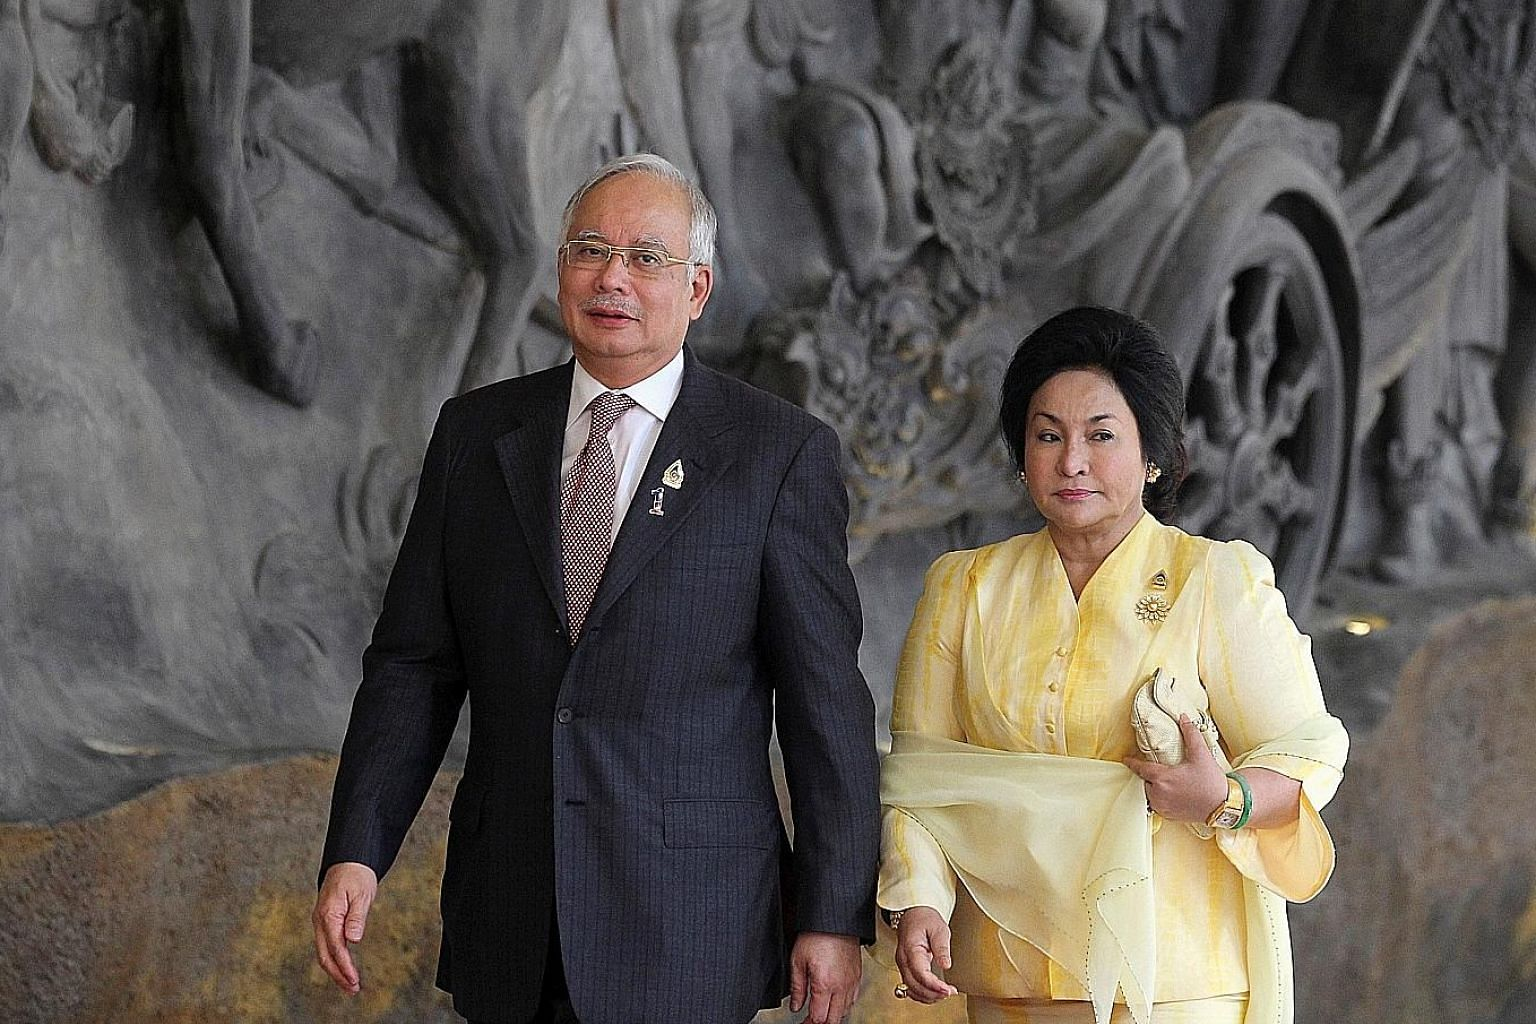 Malaysian Prime Minister Najib Razak said fake news was widely circulated during the 2013 elections, while his wife Rosmah Mansor said fake Facebook accounts were created in her name.